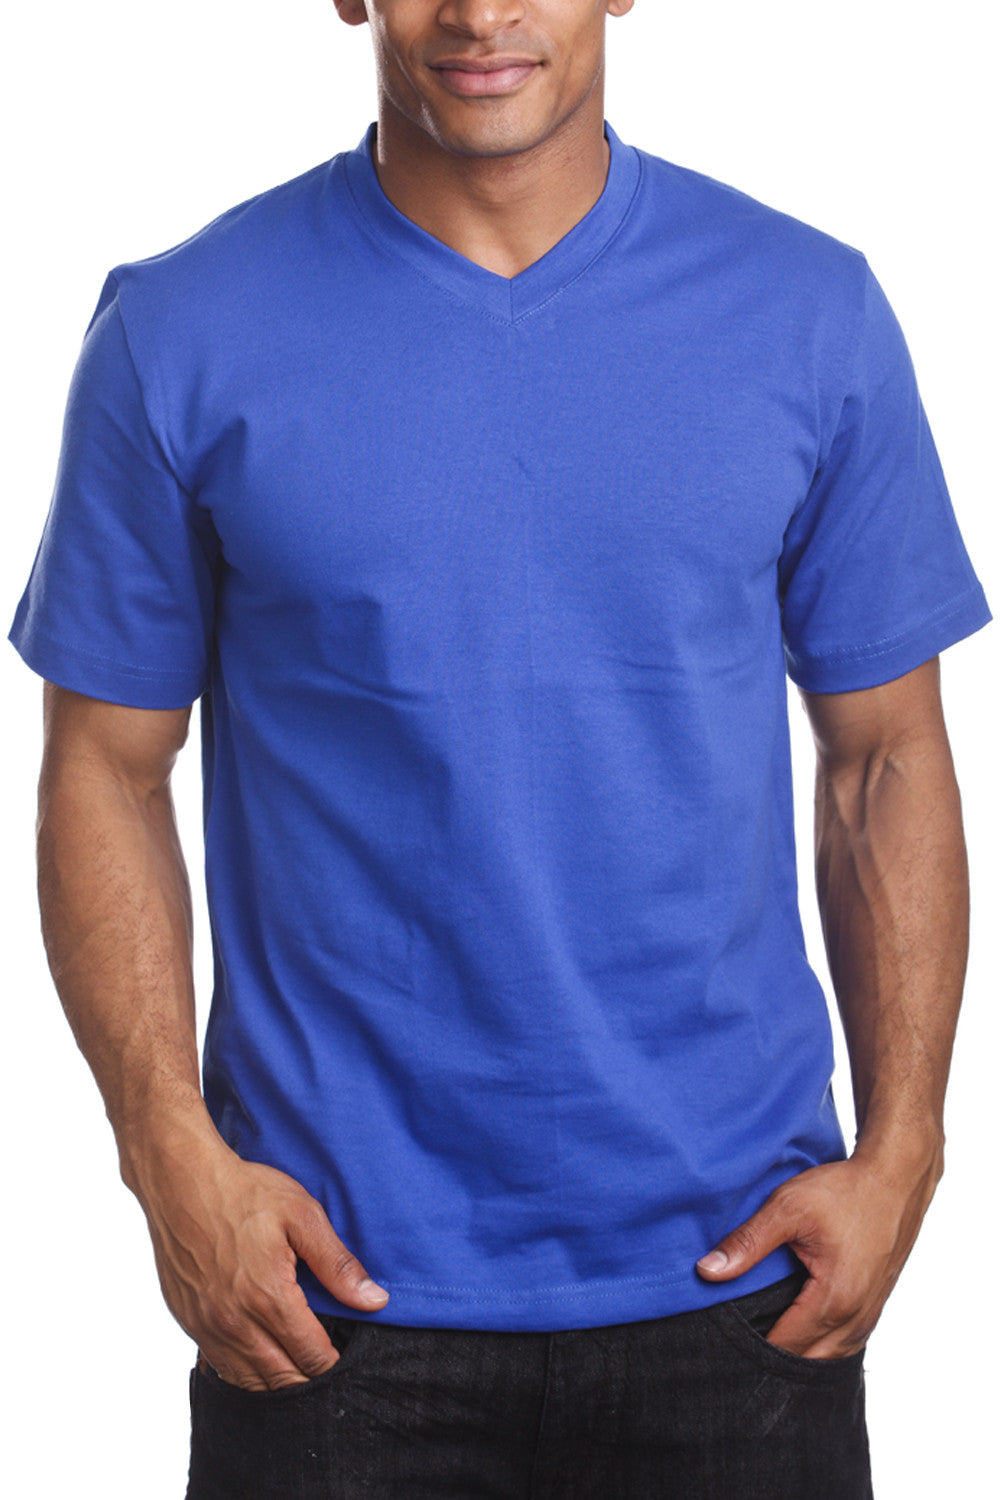 Mens Casual V-Neck T-Shirt Royal Blue